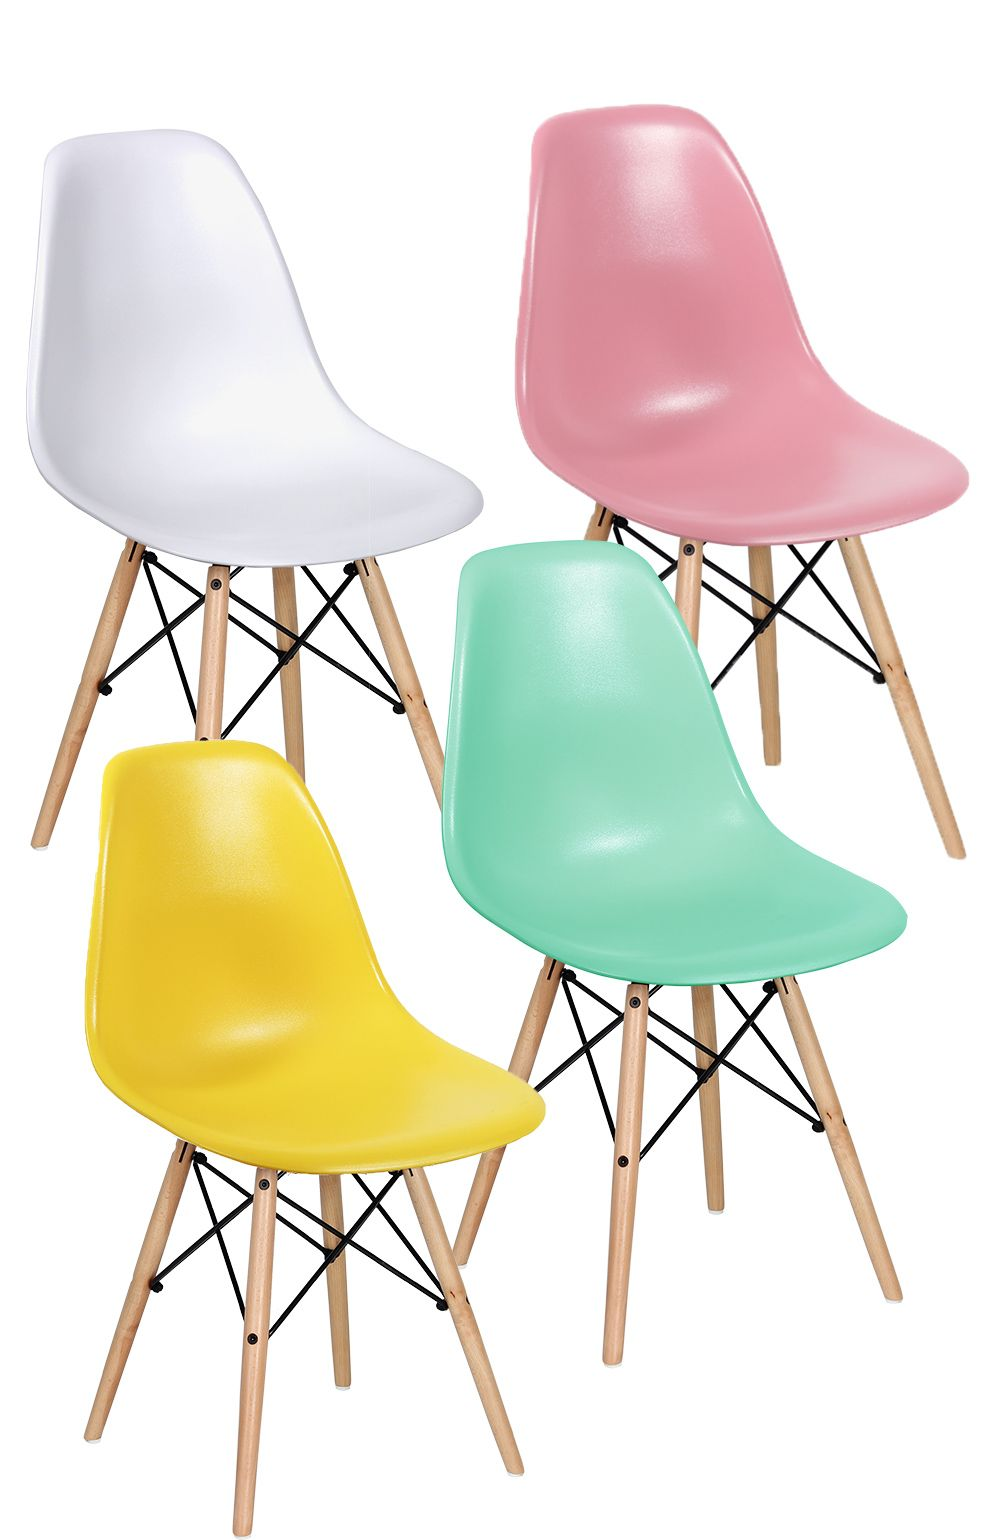 Grand Lot 4 Chaises DSW Pastel + 4 Coussins DSW Blanc Chaise Charles Eames, Chaise  Dsw